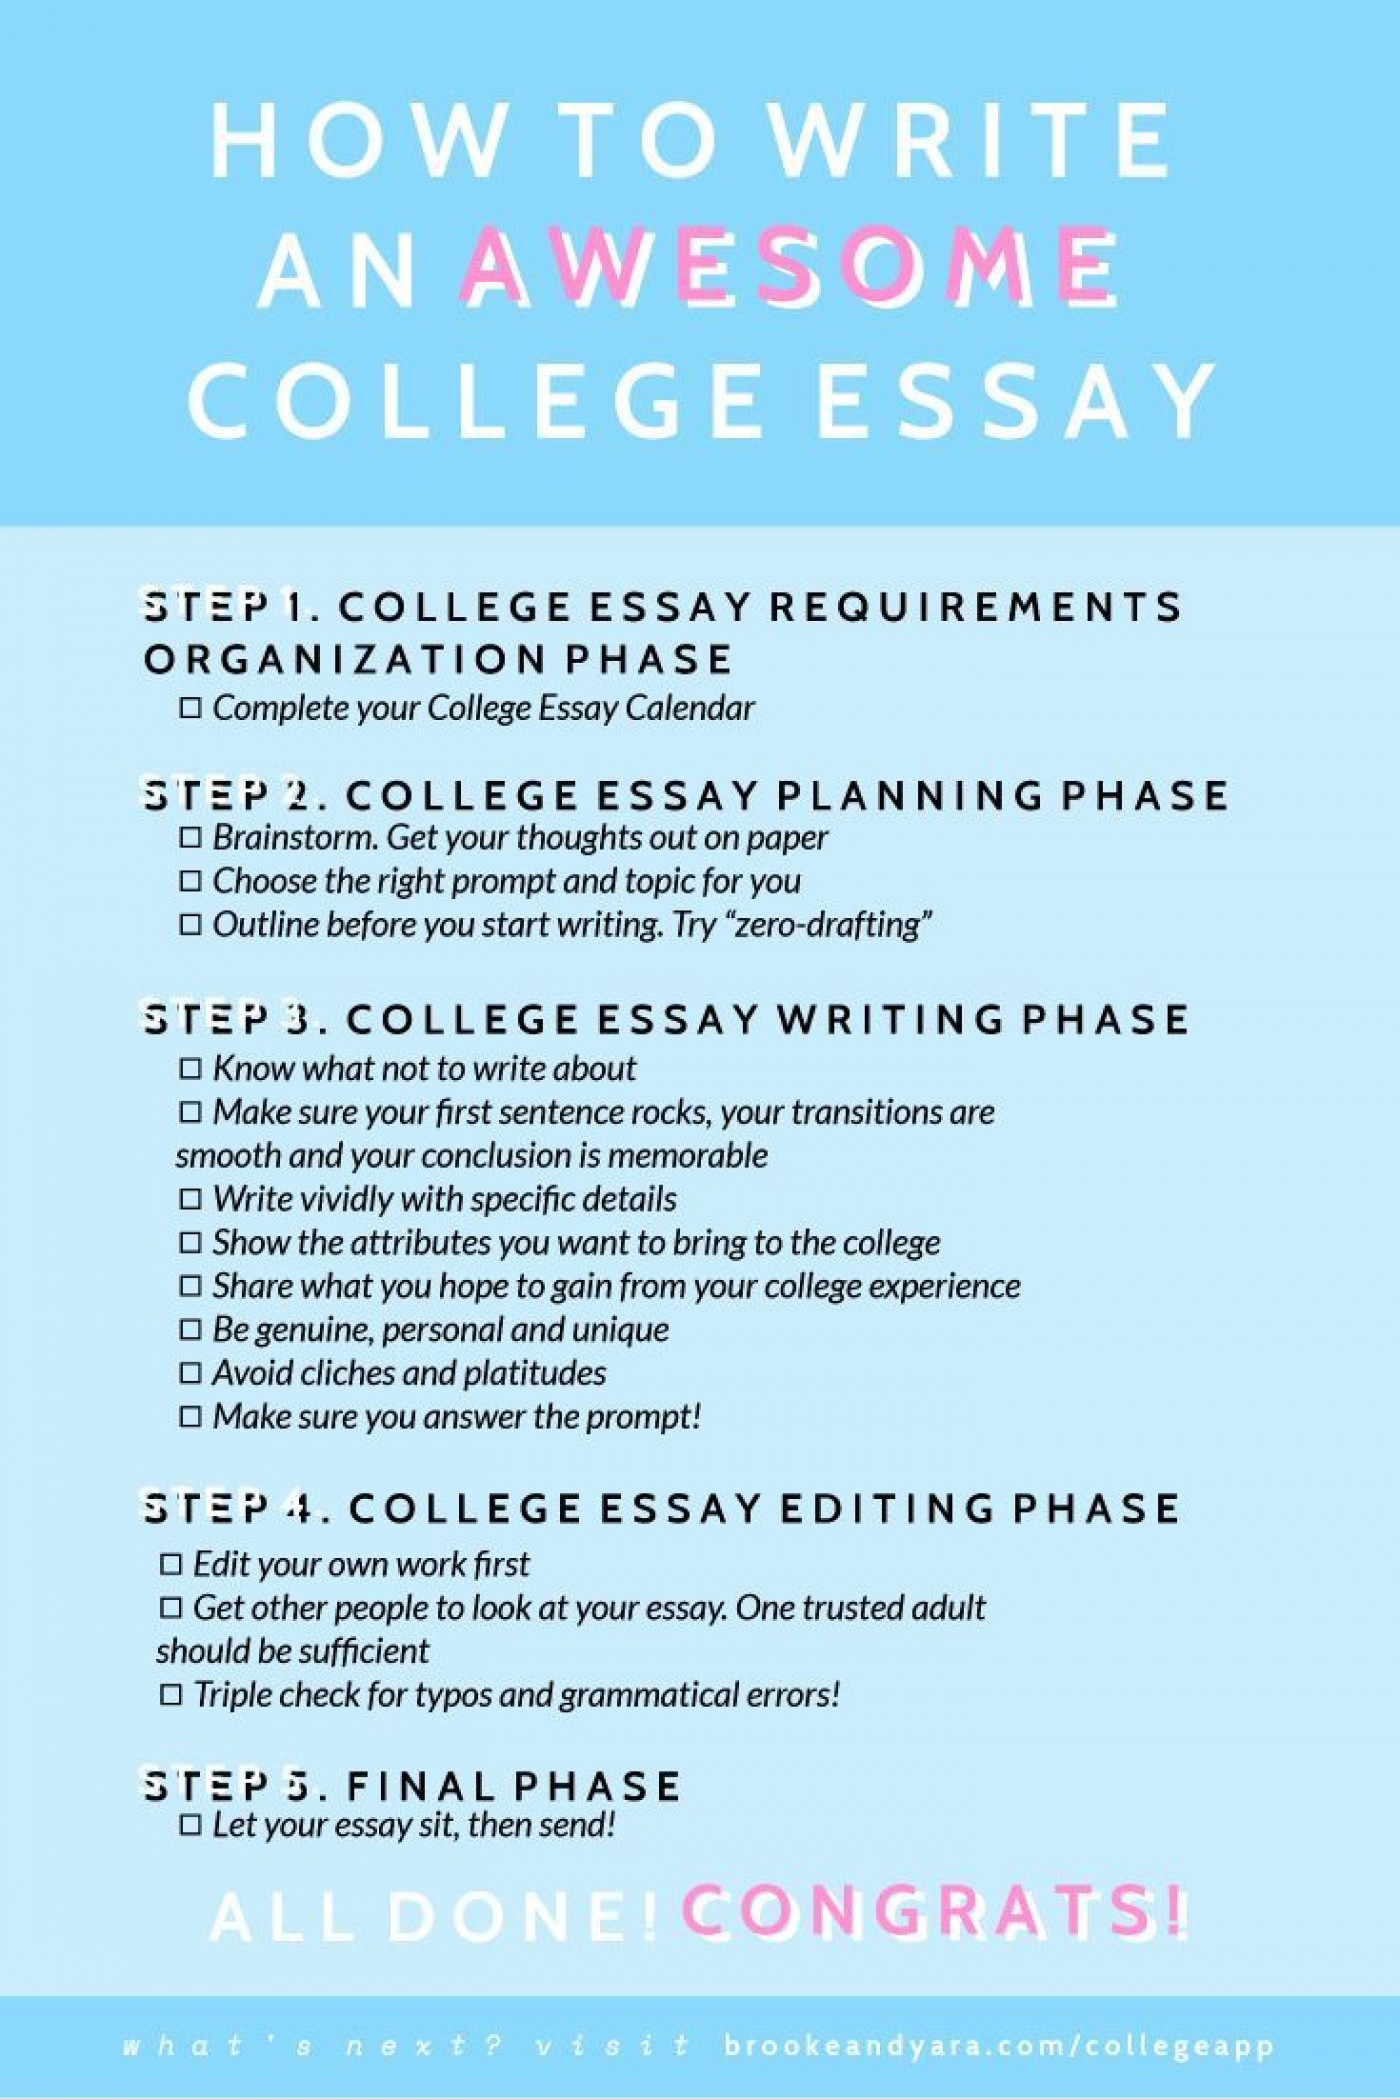 009 Essay Example What Not To Write About In Shocking A College Transfer Good Things 1400